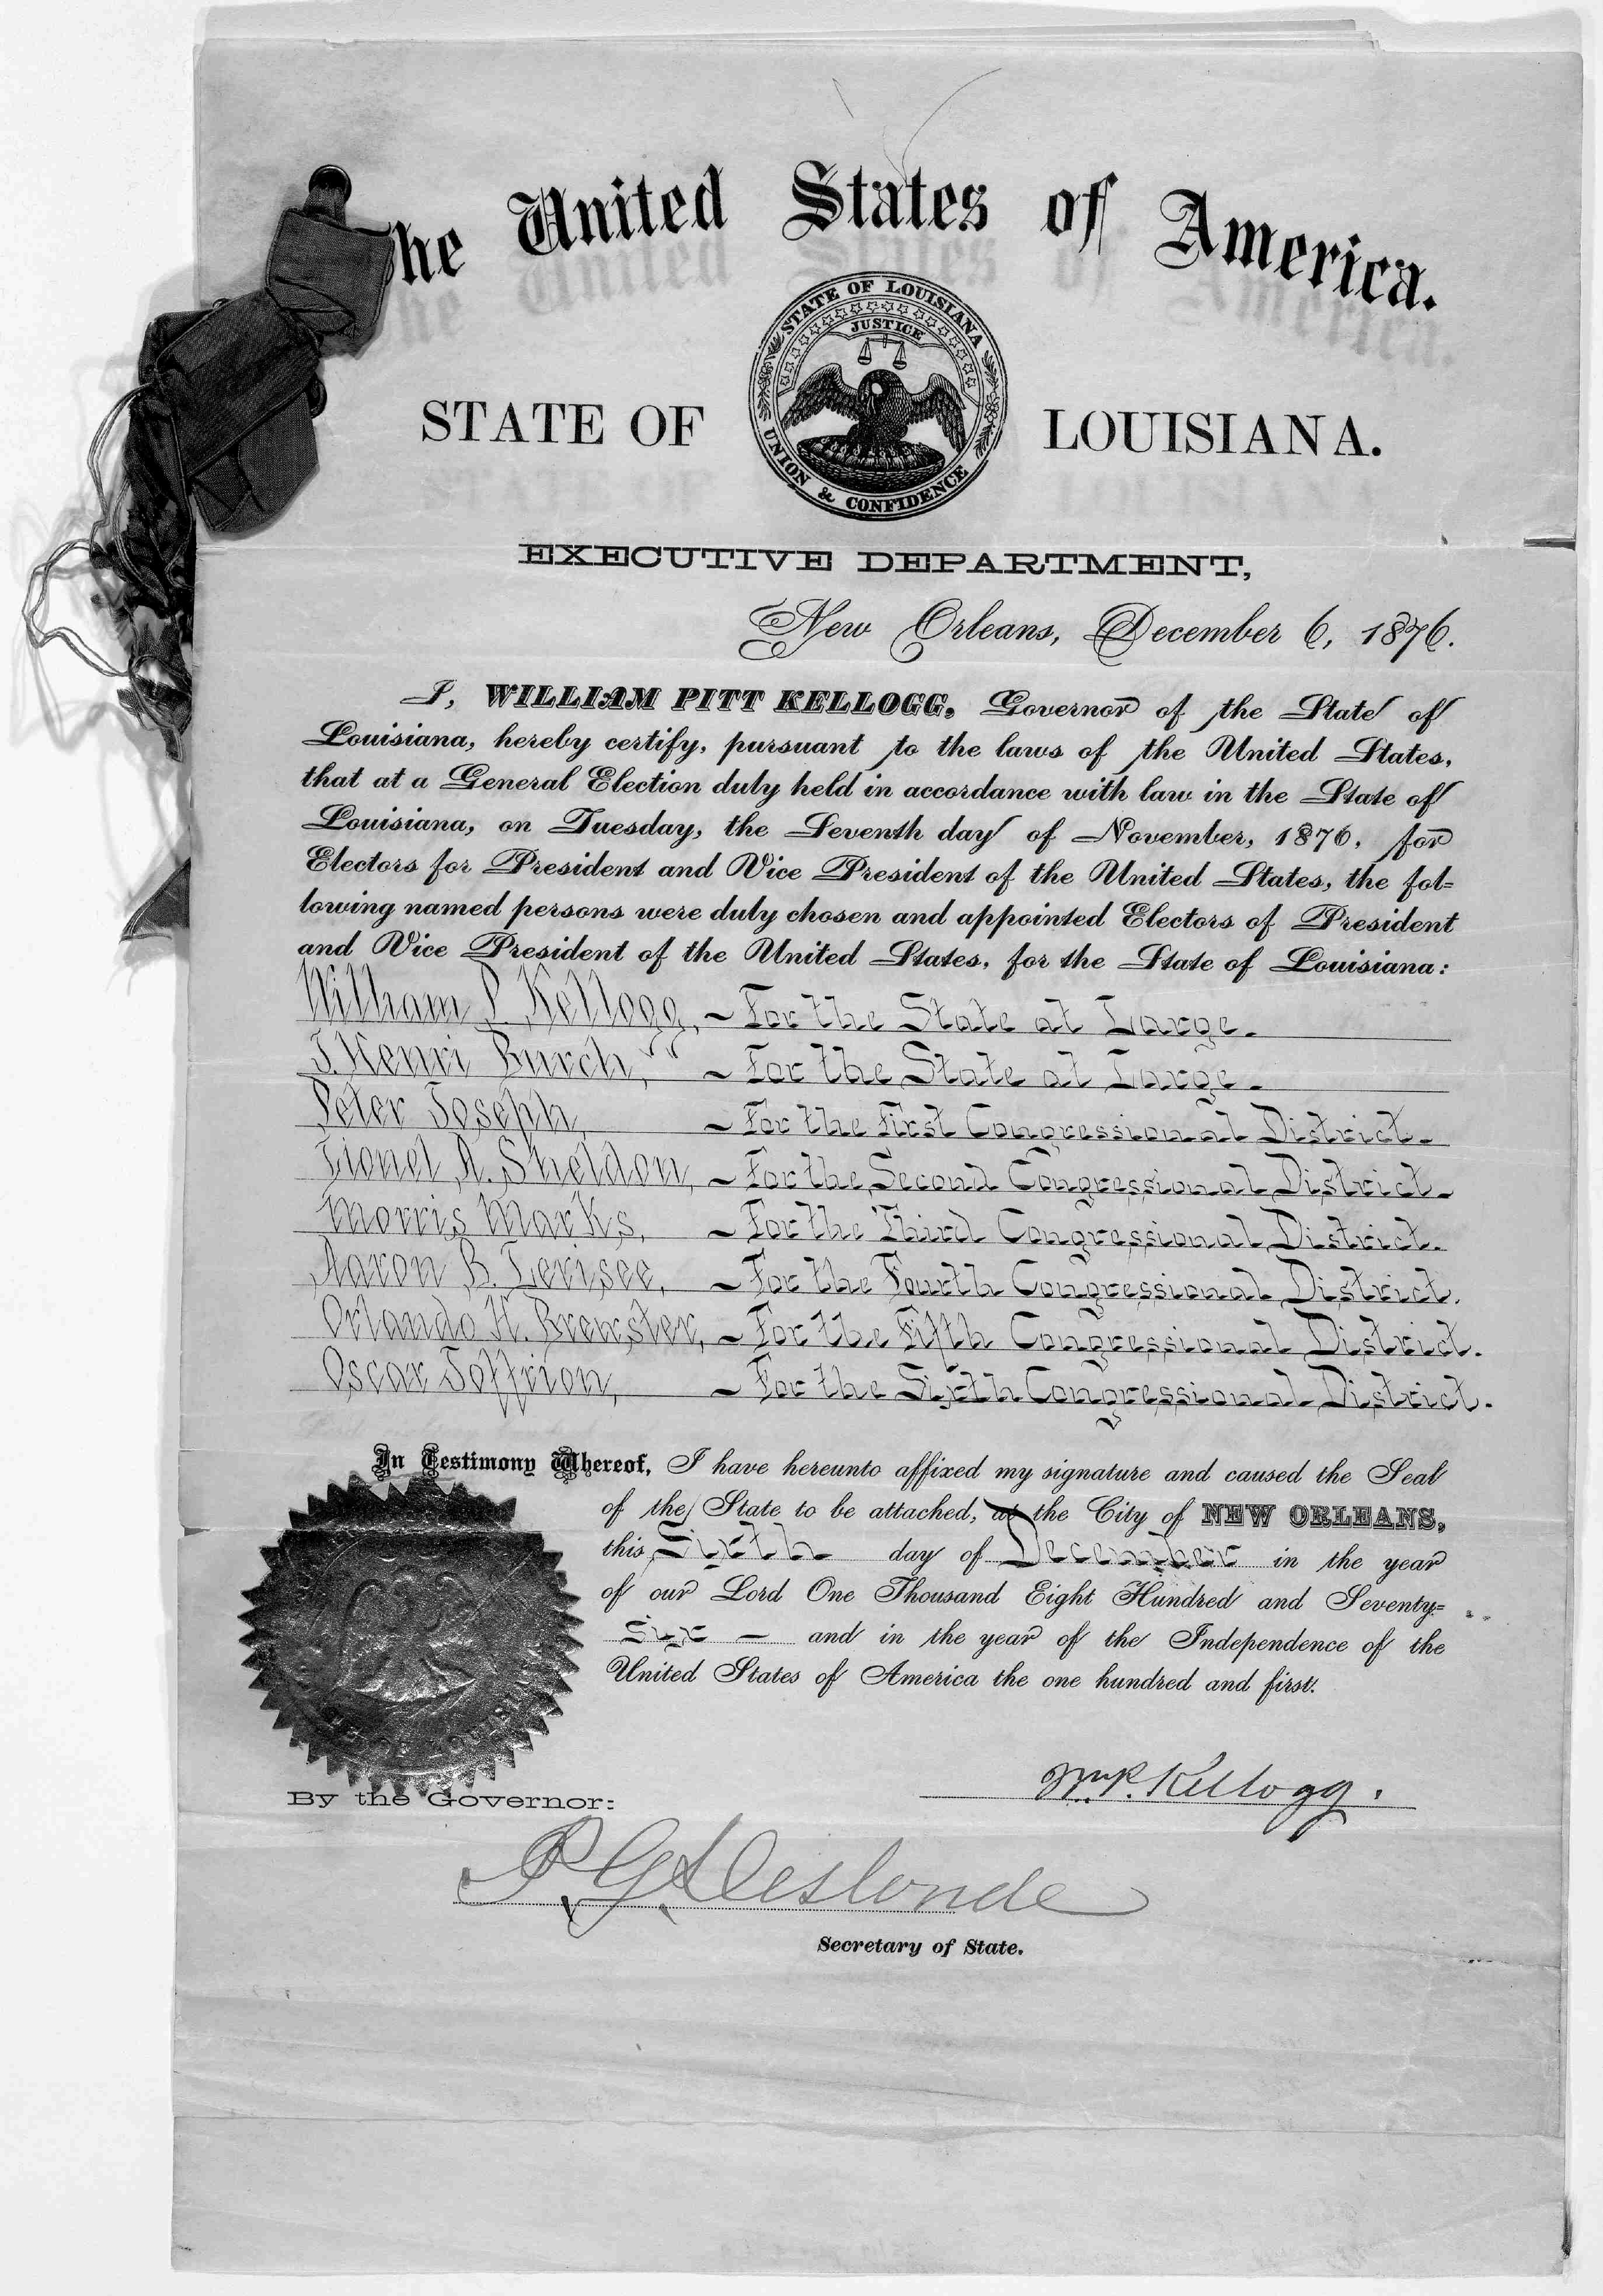 Filea Certificate For The Electoral Vote For Rutherford B Hayes